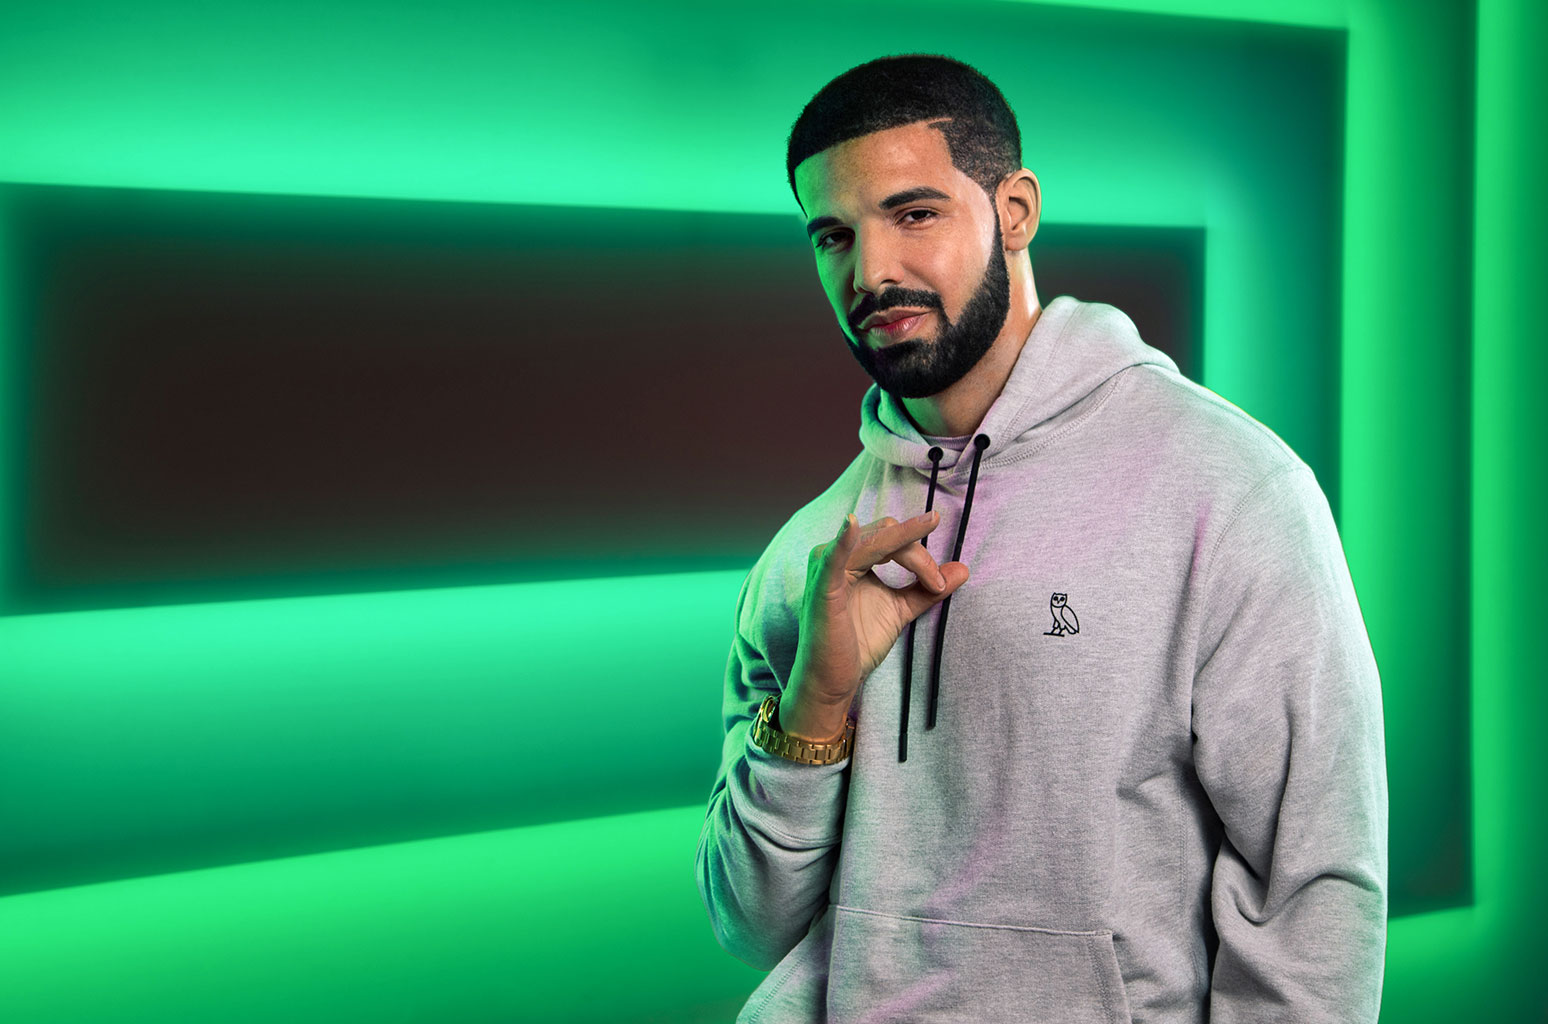 Drake Is Now a Wax Figure at Madame Tussauds in Las Vegas